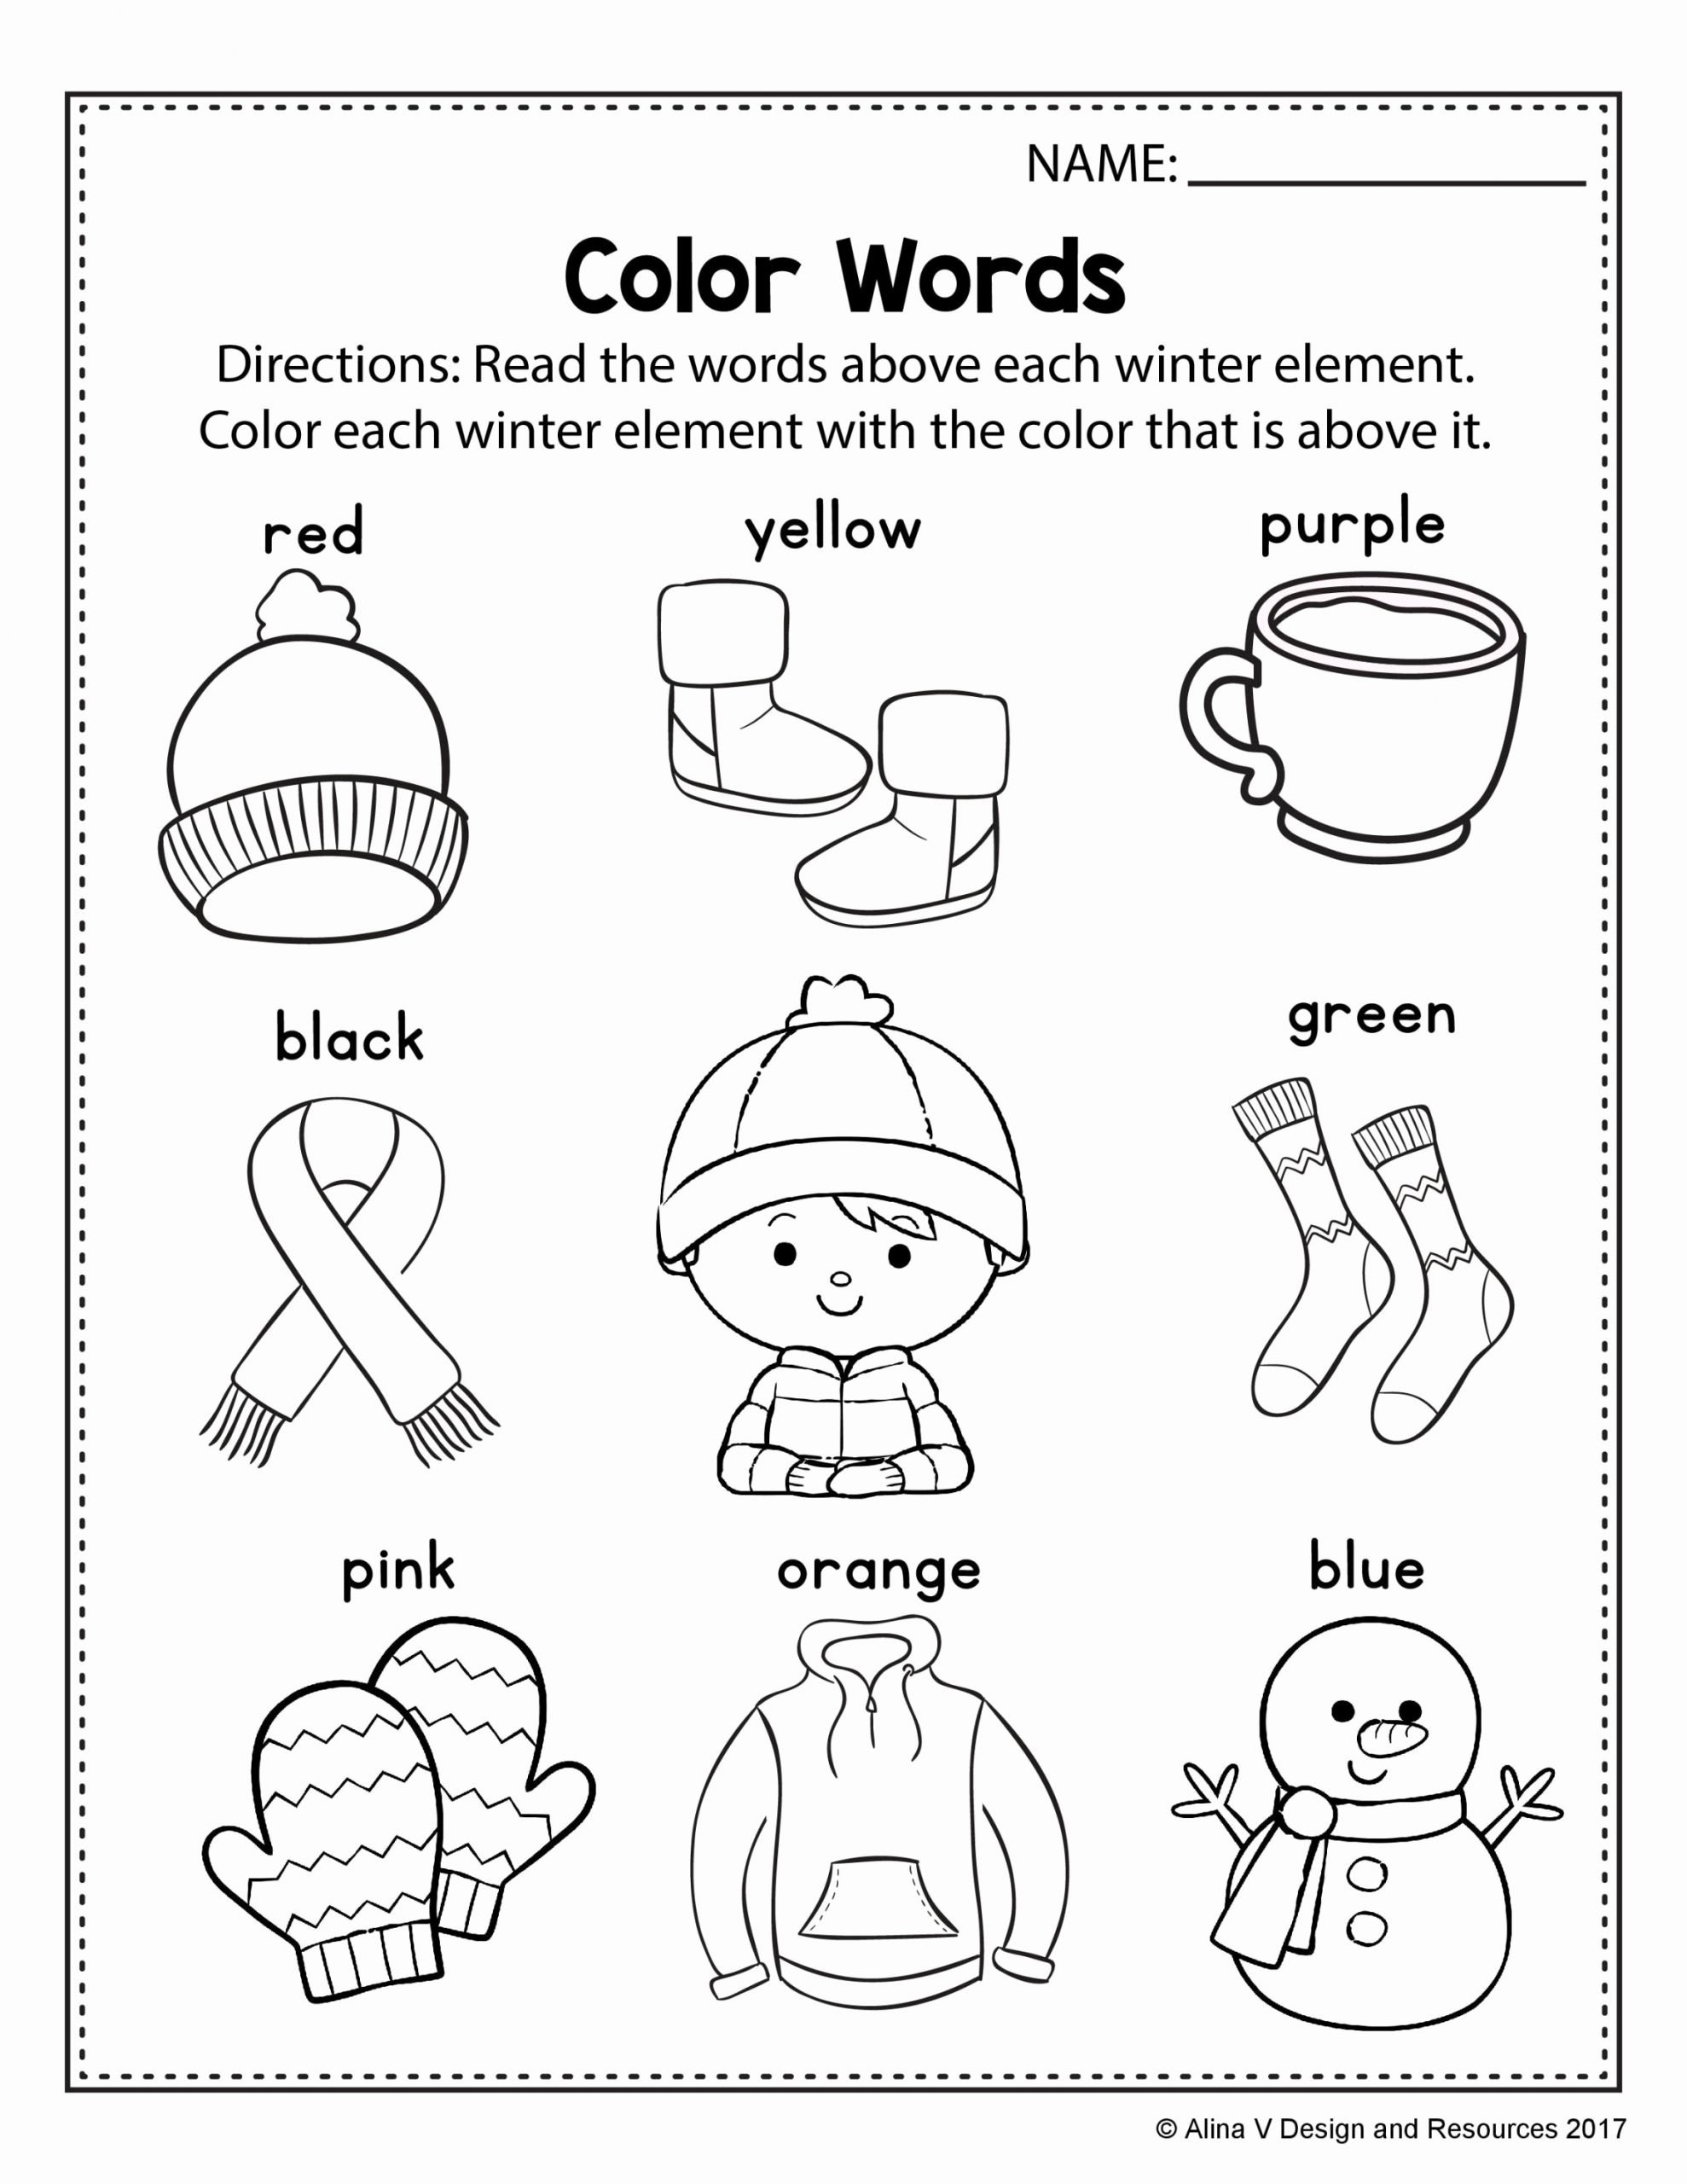 Winter Worksheets for Preschoolers Free Kids Printable Worksheet Cold Winter